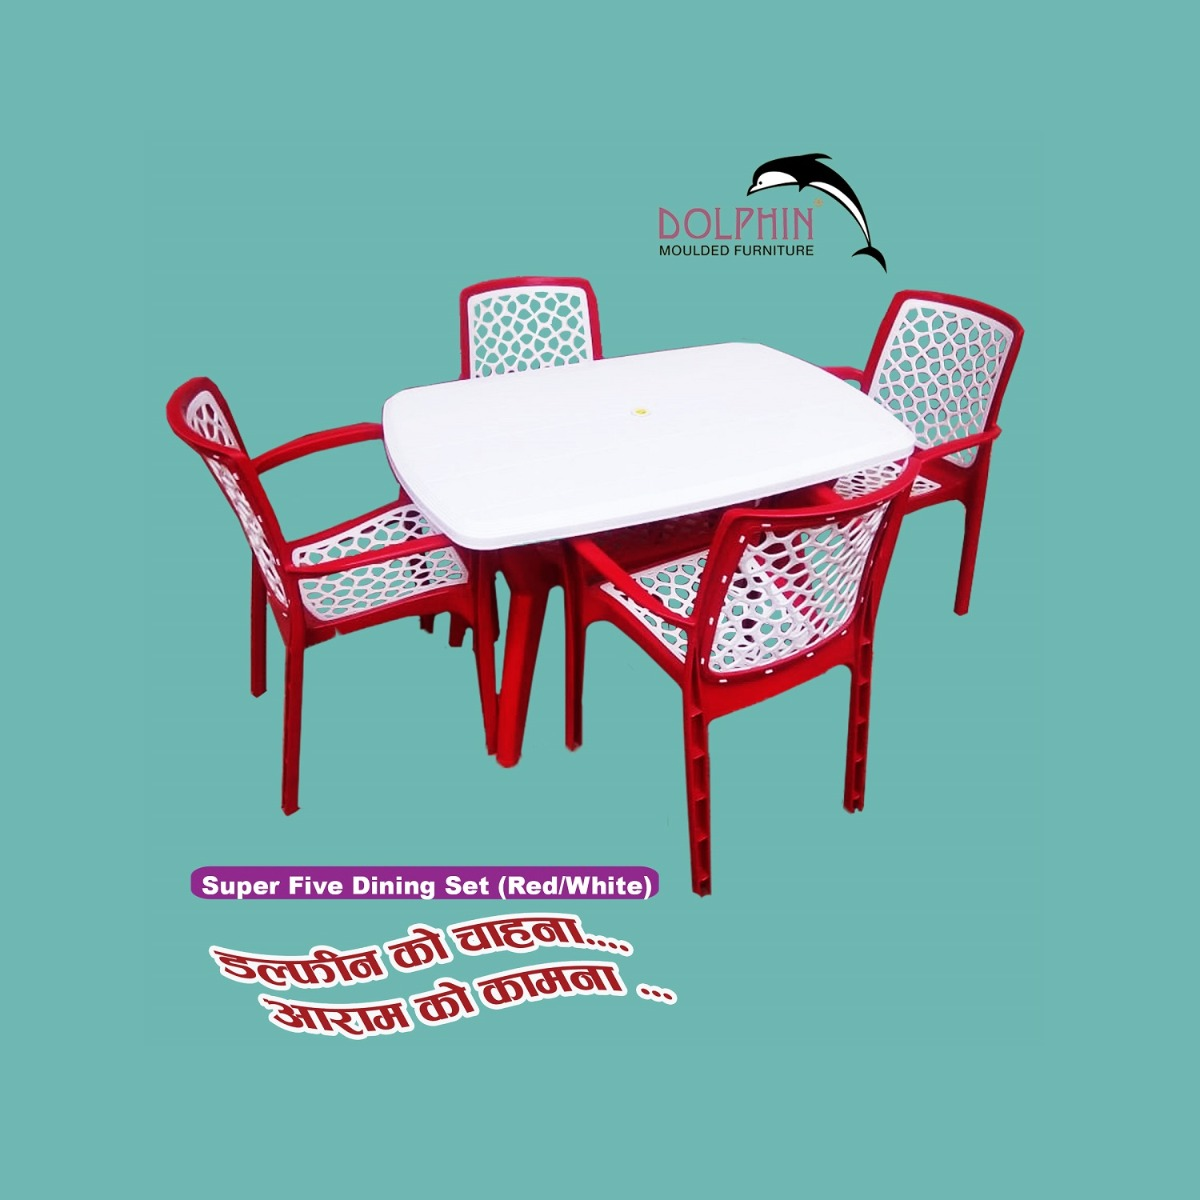 Dolphin Plastic Super Five Dining Set (Red White Mix)